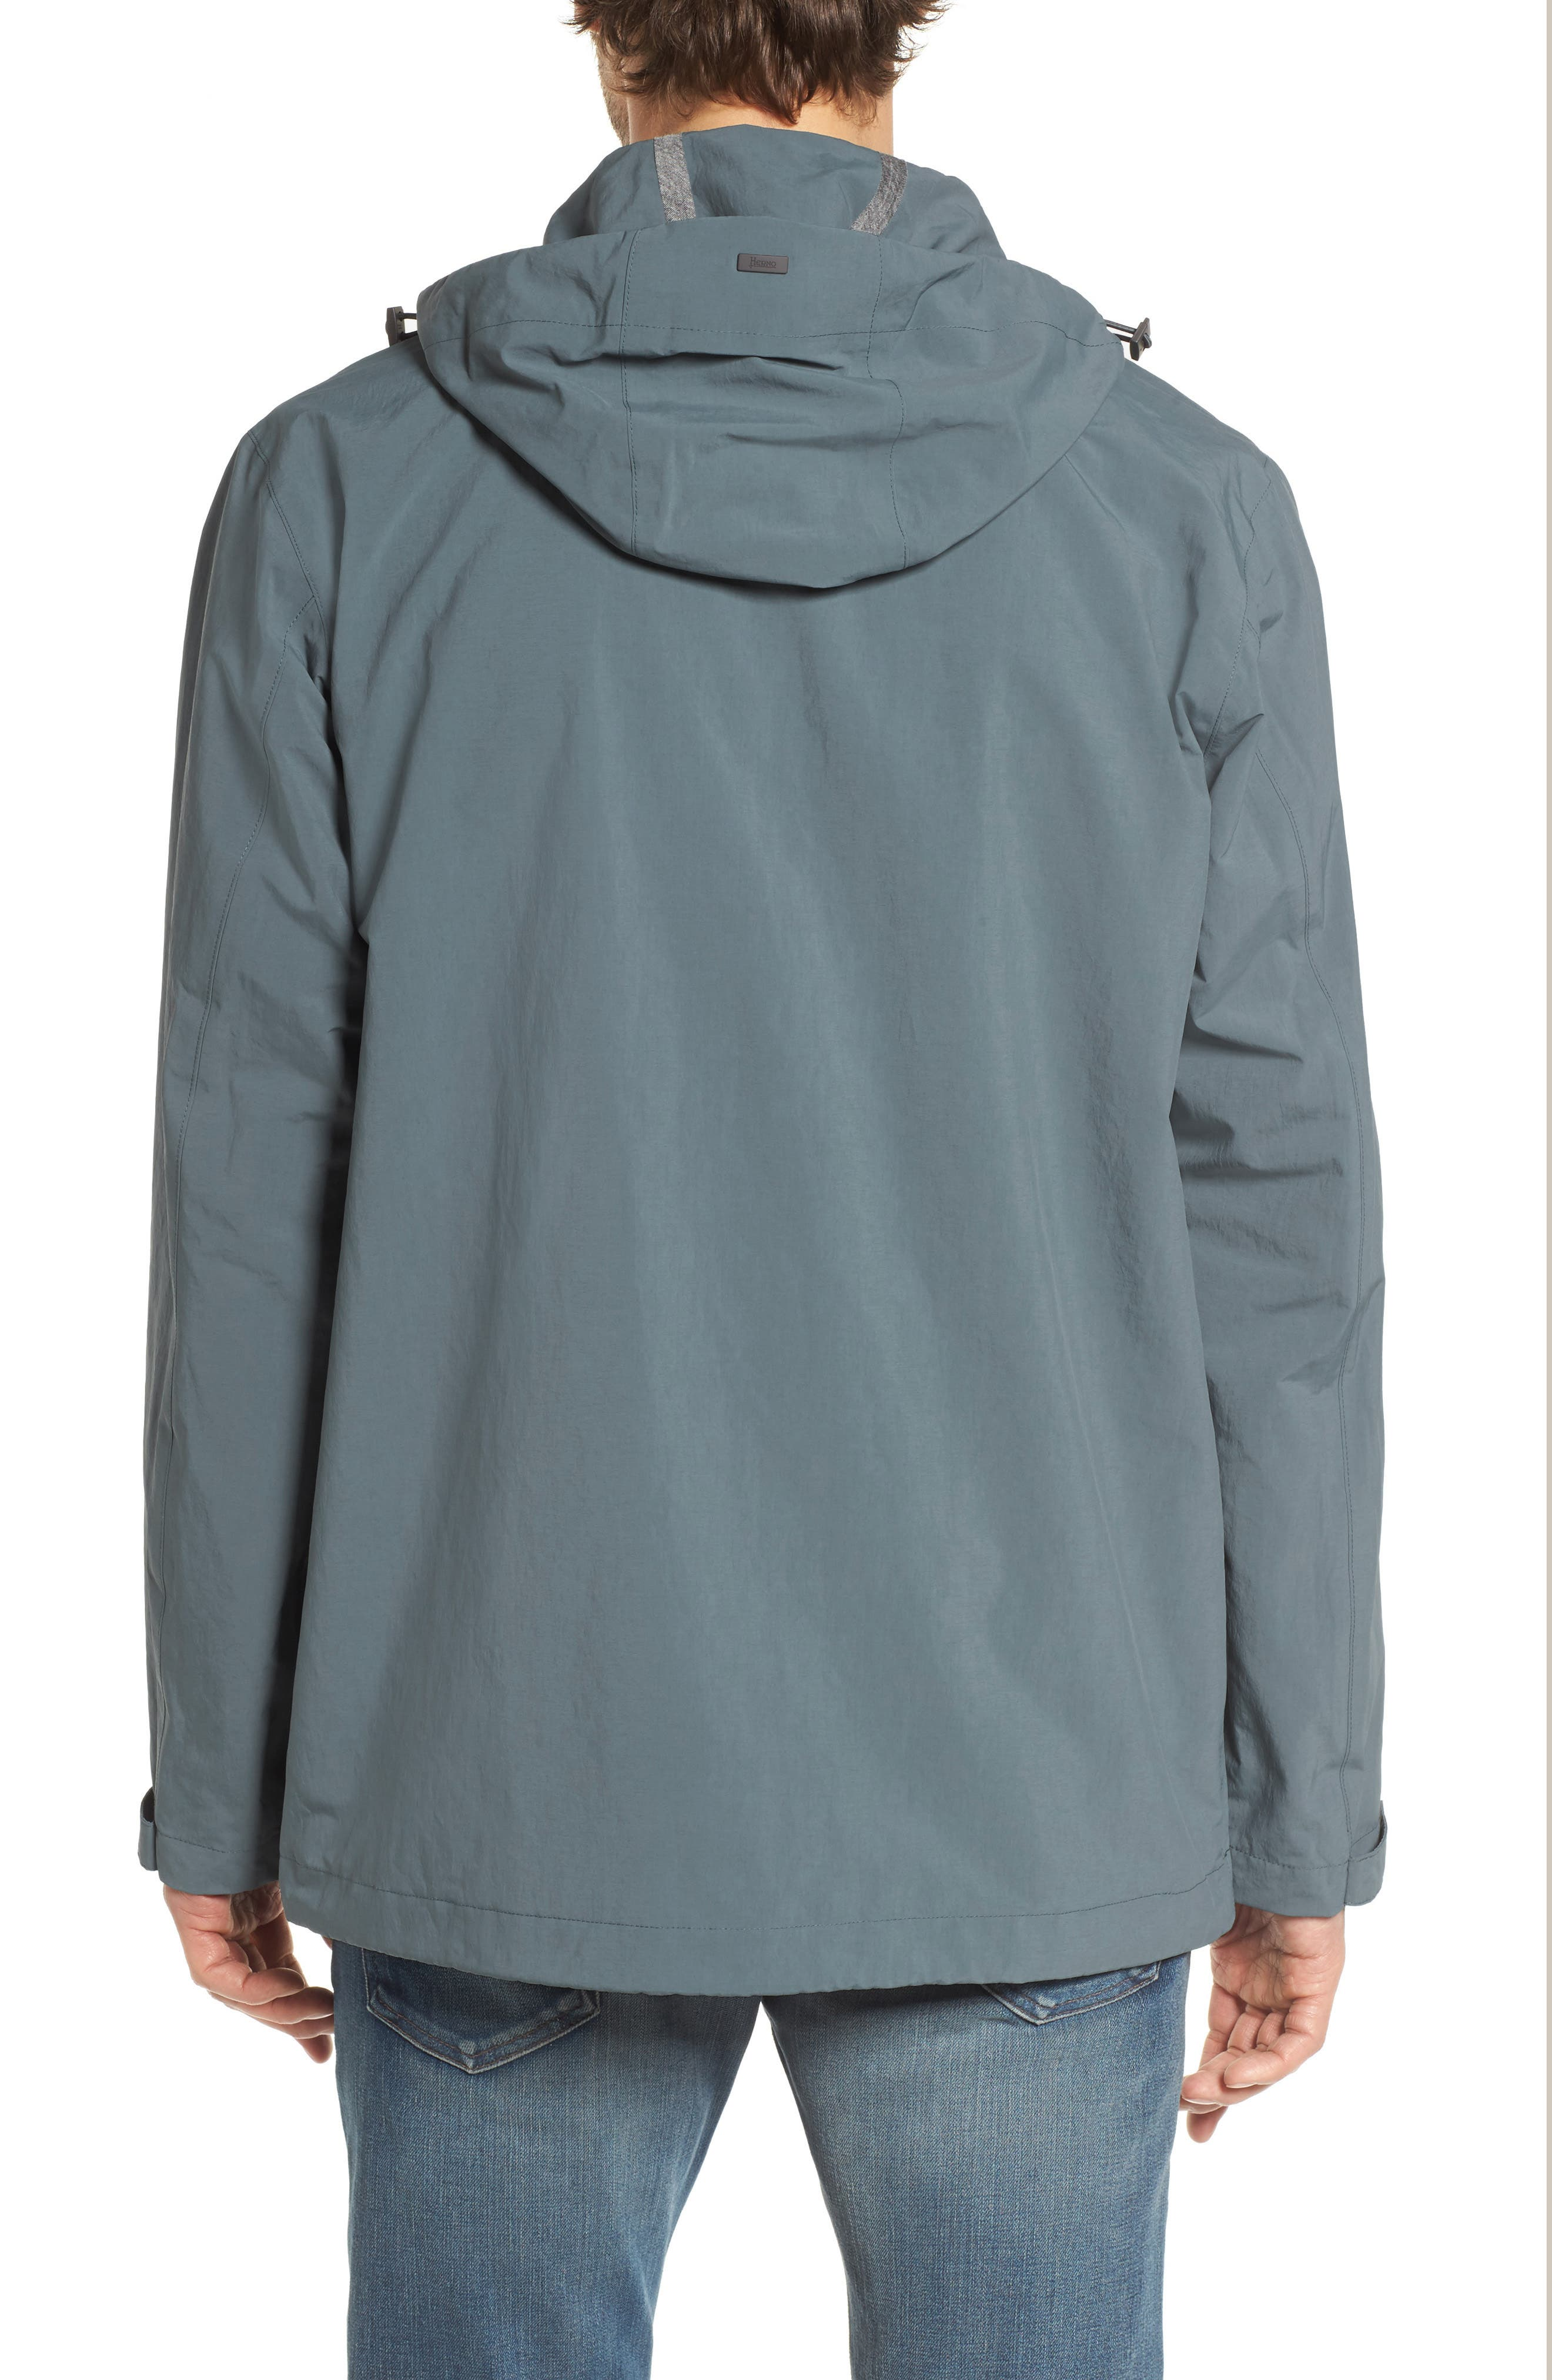 Plaster Hooded Raincoat,                             Alternate thumbnail 2, color,                             BLUE/ GREY